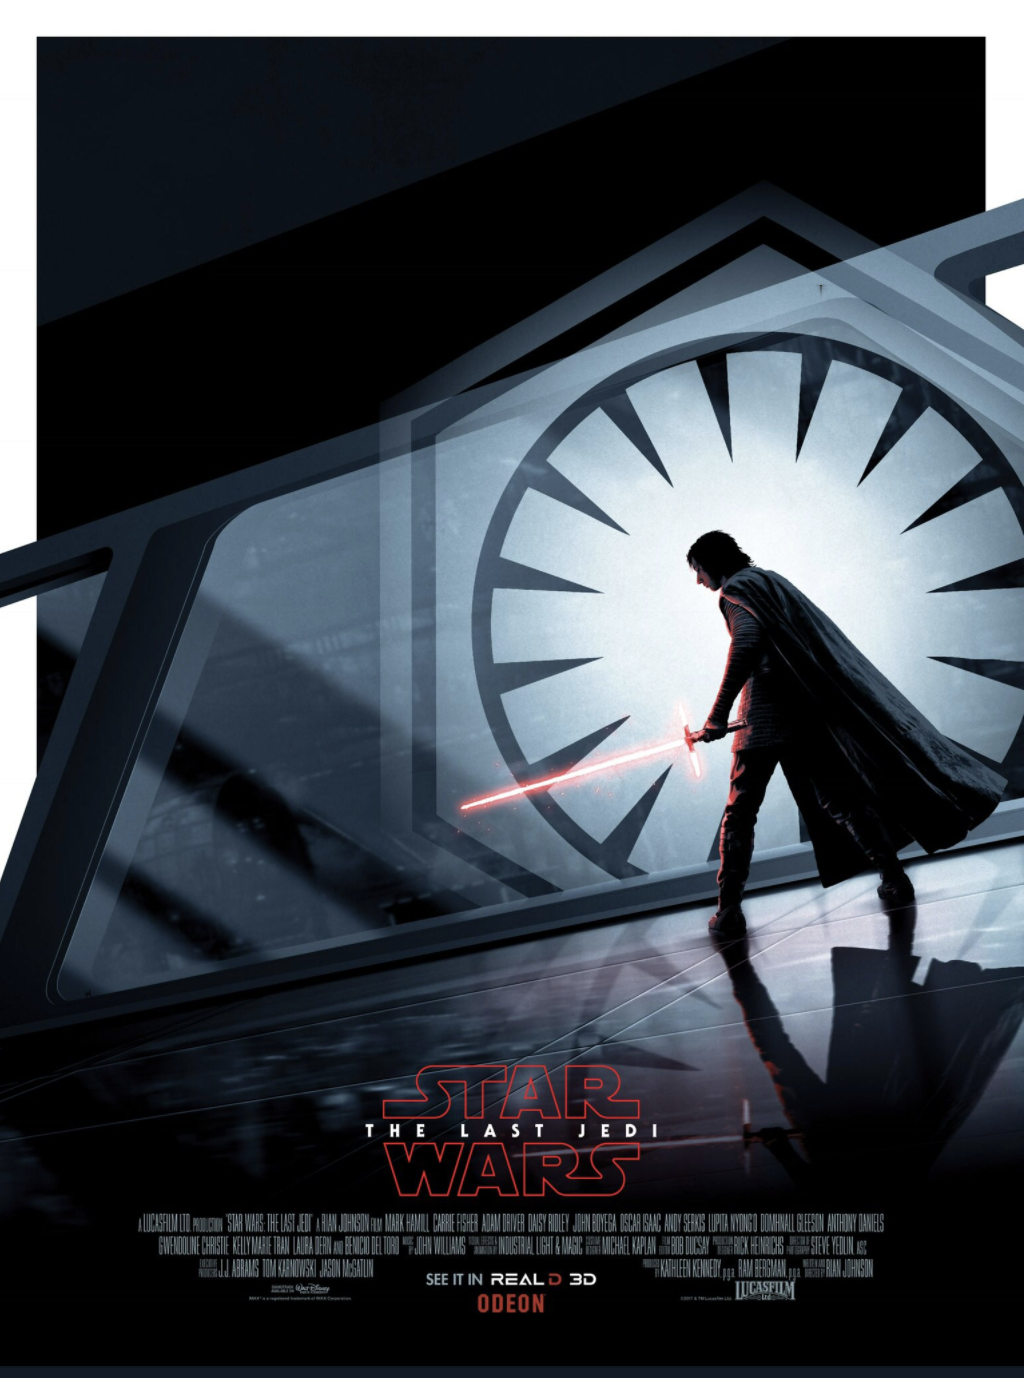 new-star-wars-the-last-jedi-posters-and-early-buzz-says-its-a-surprising-funny-and-jaw-dropping-film2